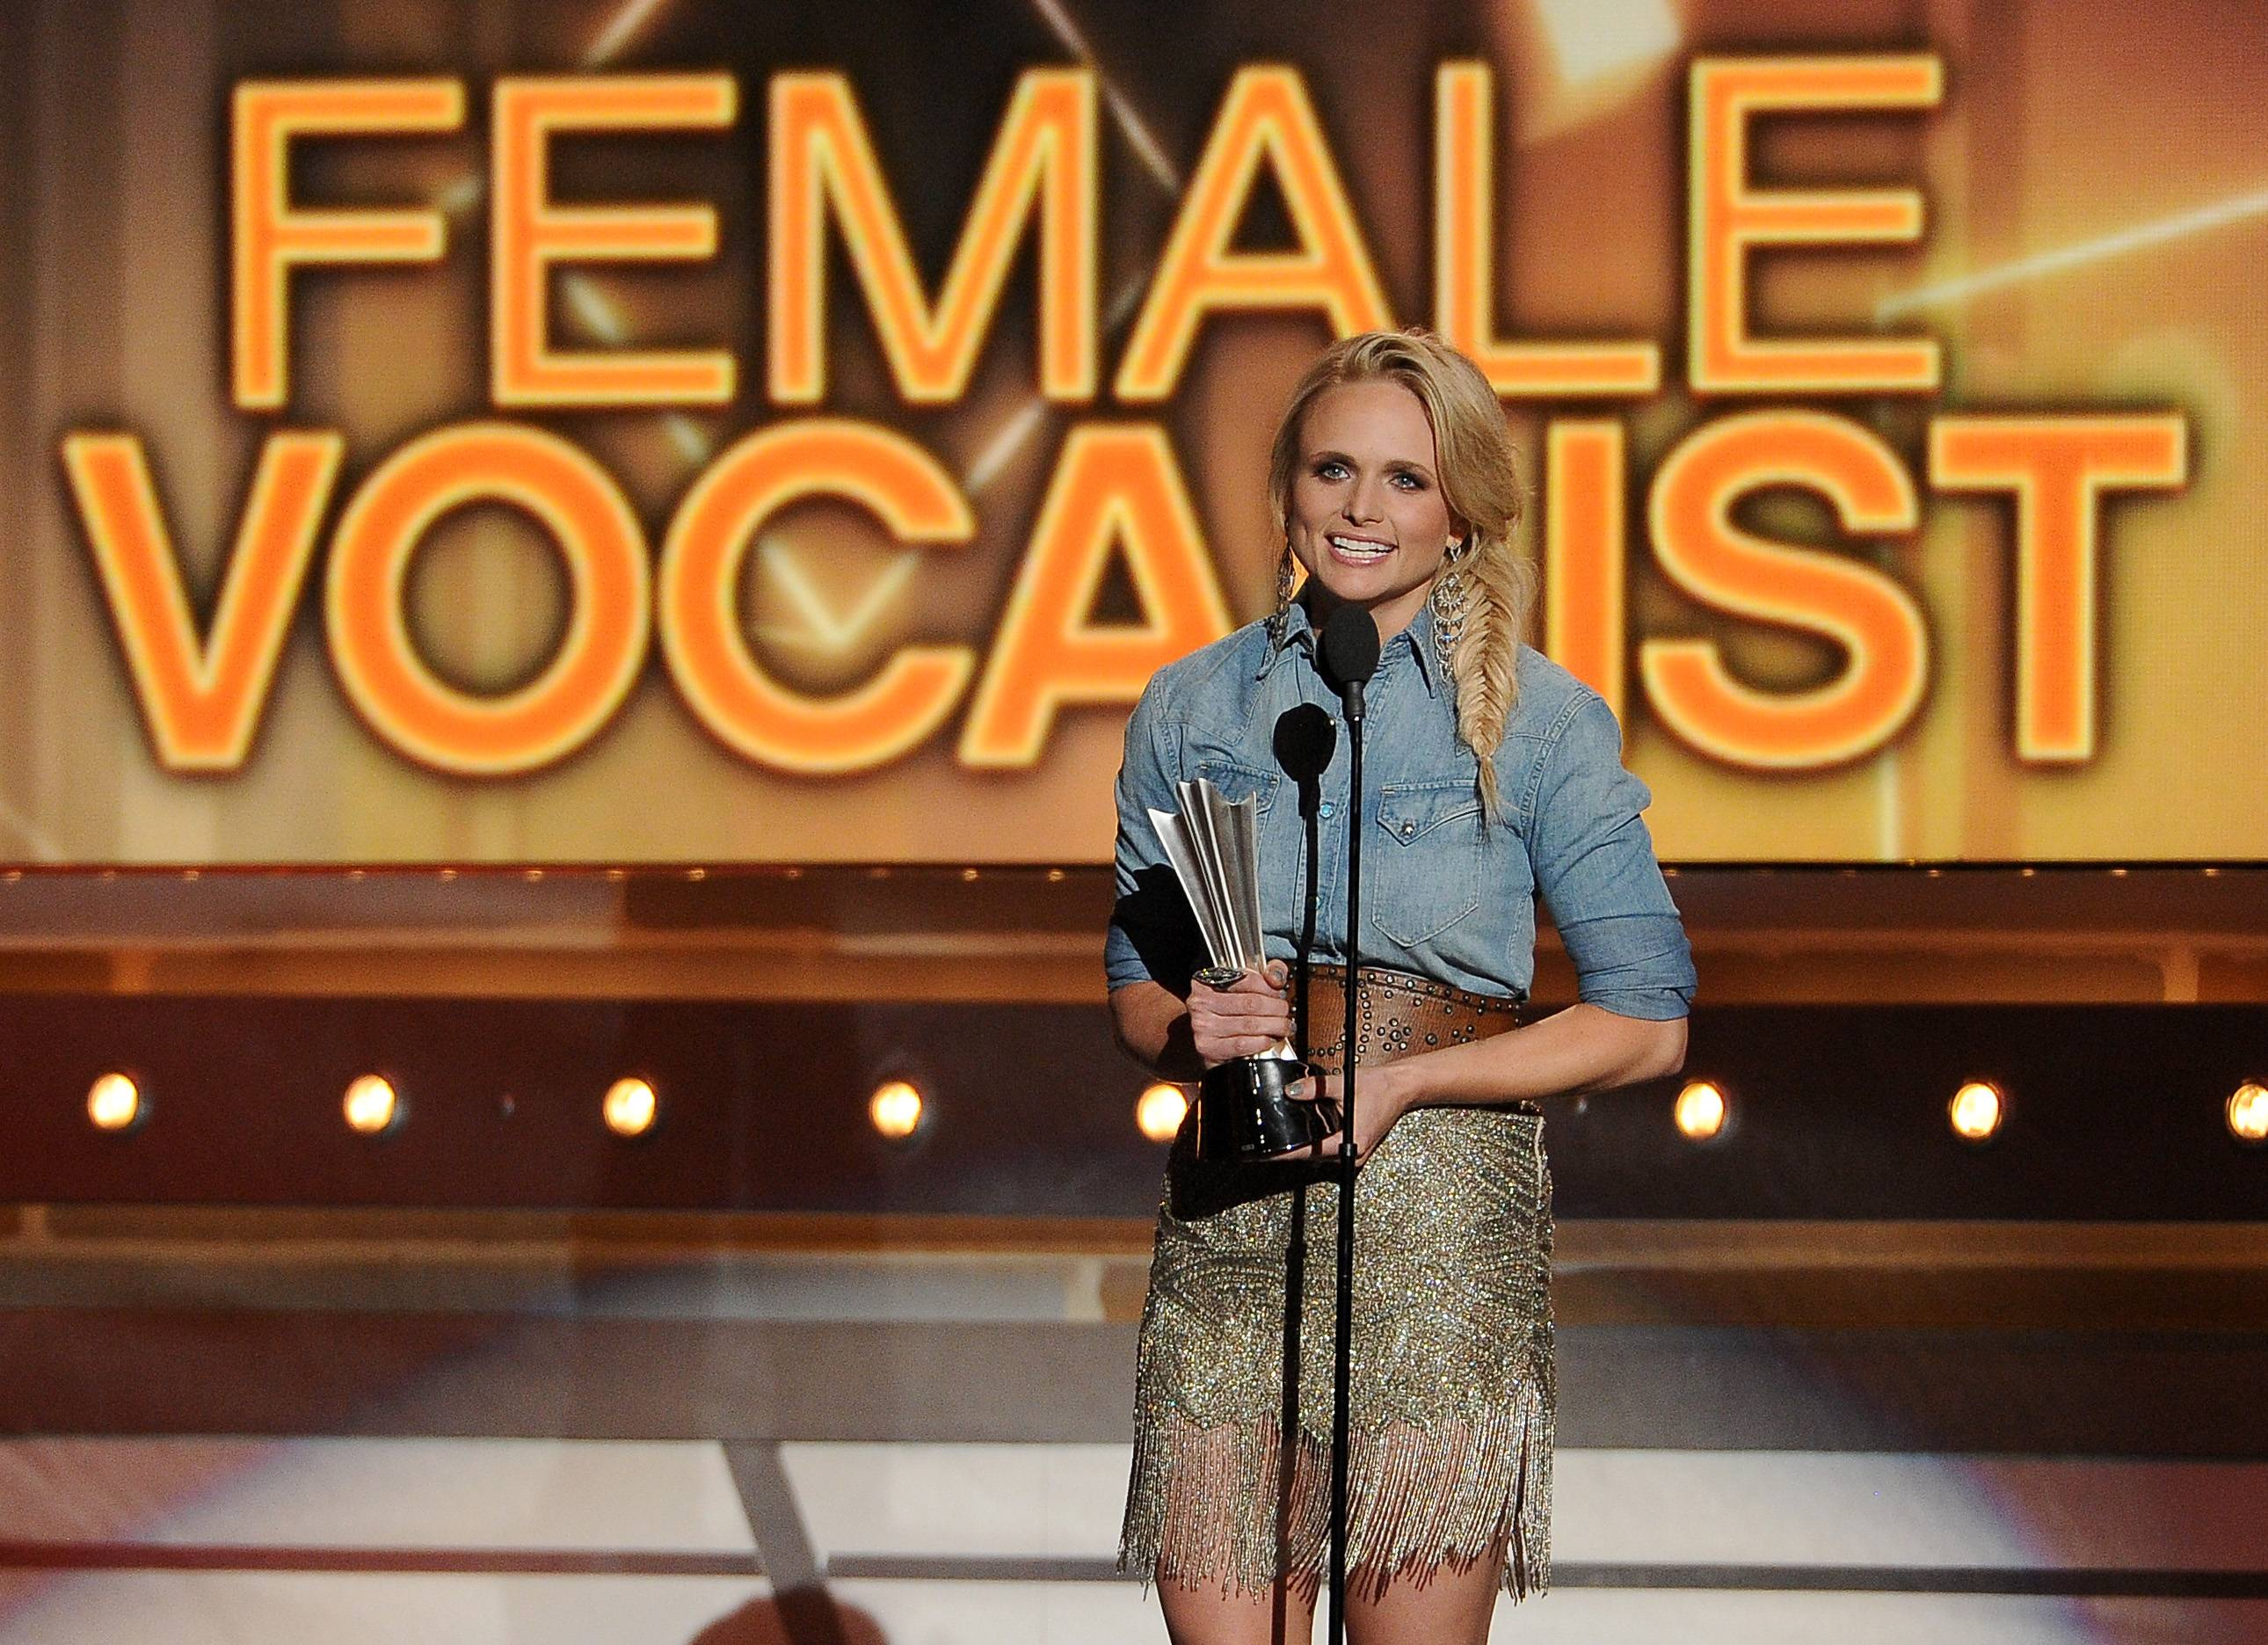 Miranda Lambert accepts the award for female vocalist of the year at the 49th annual Academy of Country Music Awards at the MGM Grand Garden Arena on Sunday in Las Vegas.